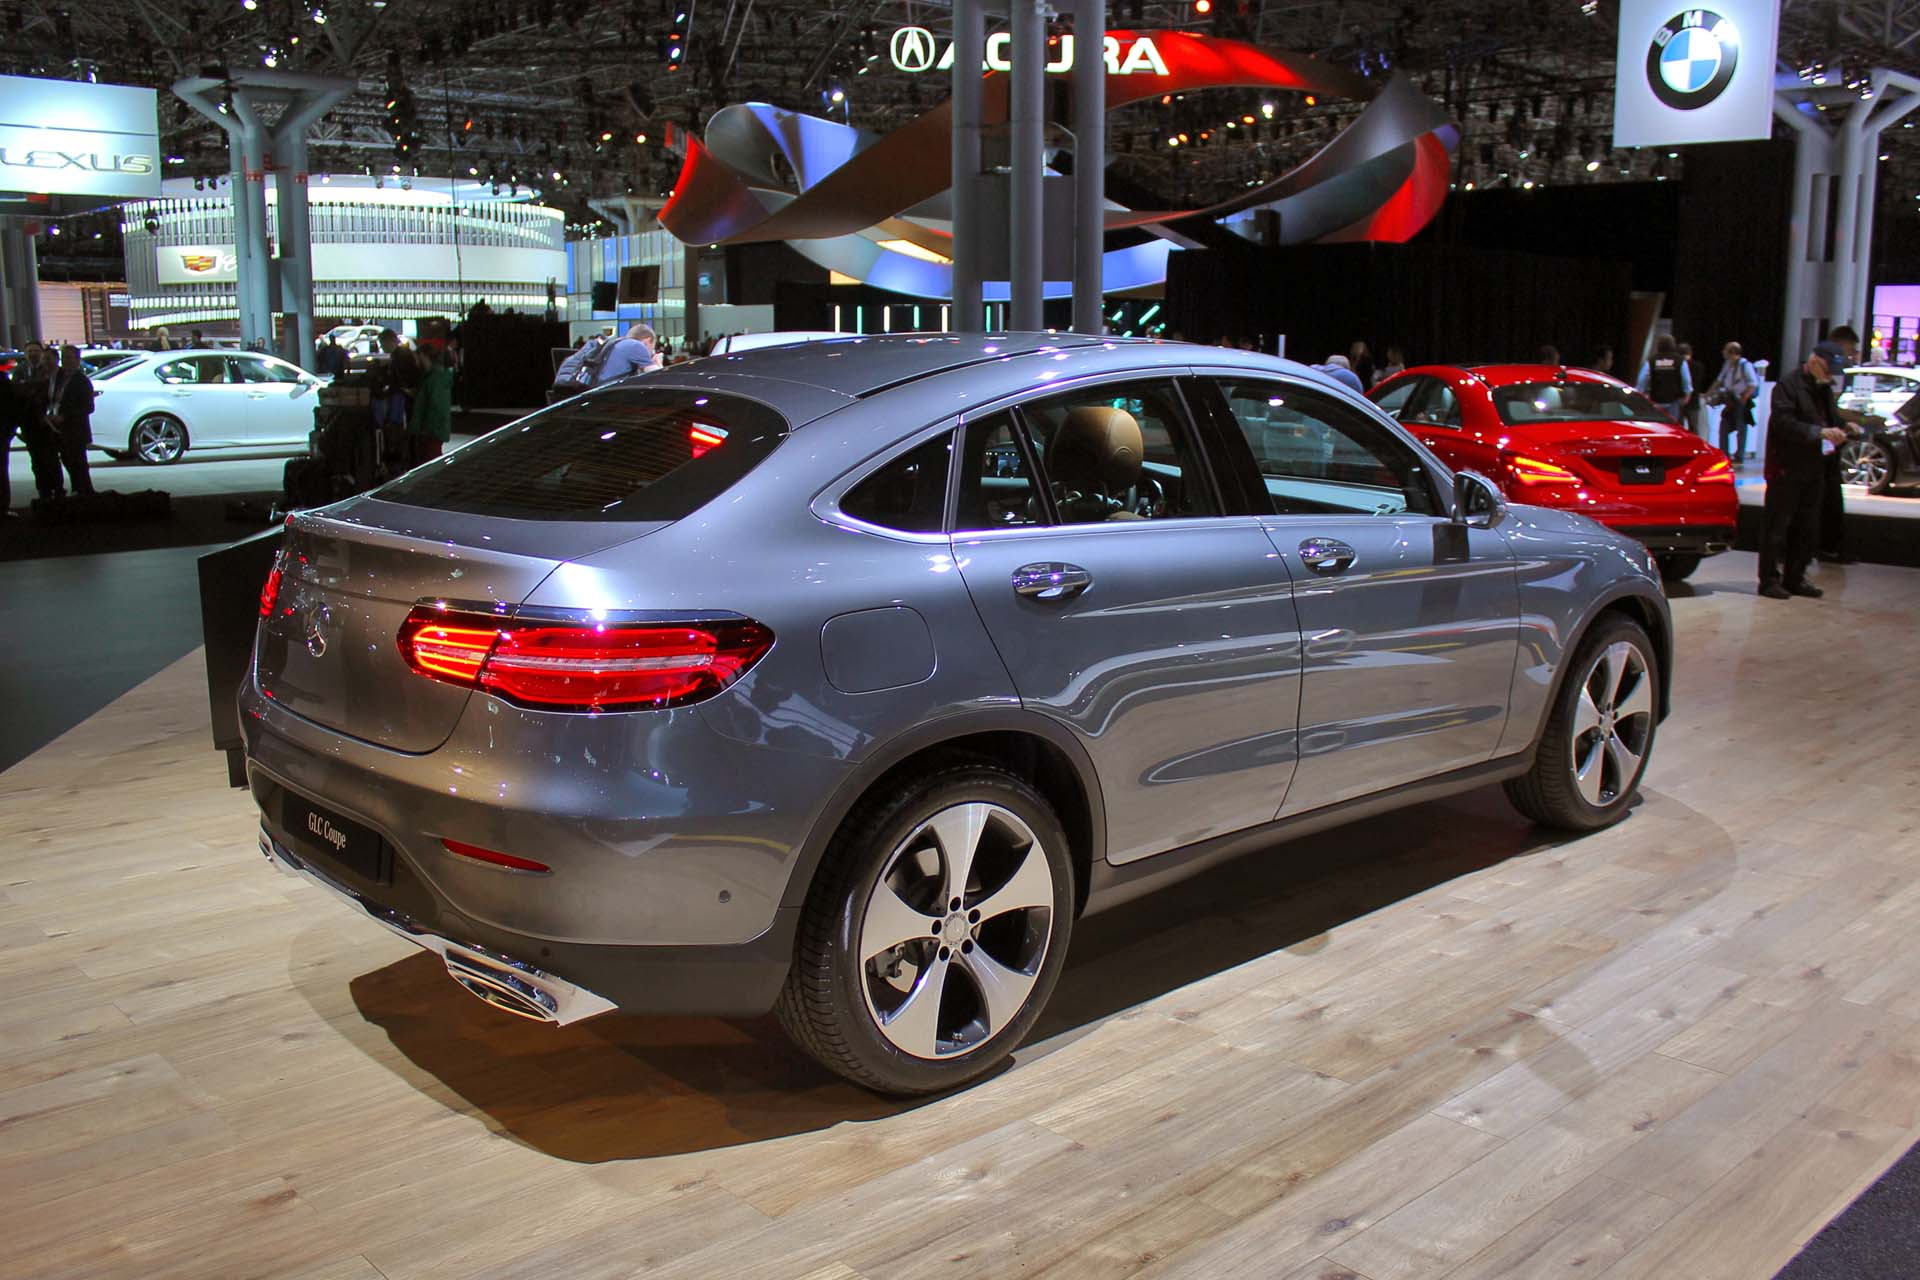 2017 Mercedes Benz GLC Coupe Lands In New York Autosca